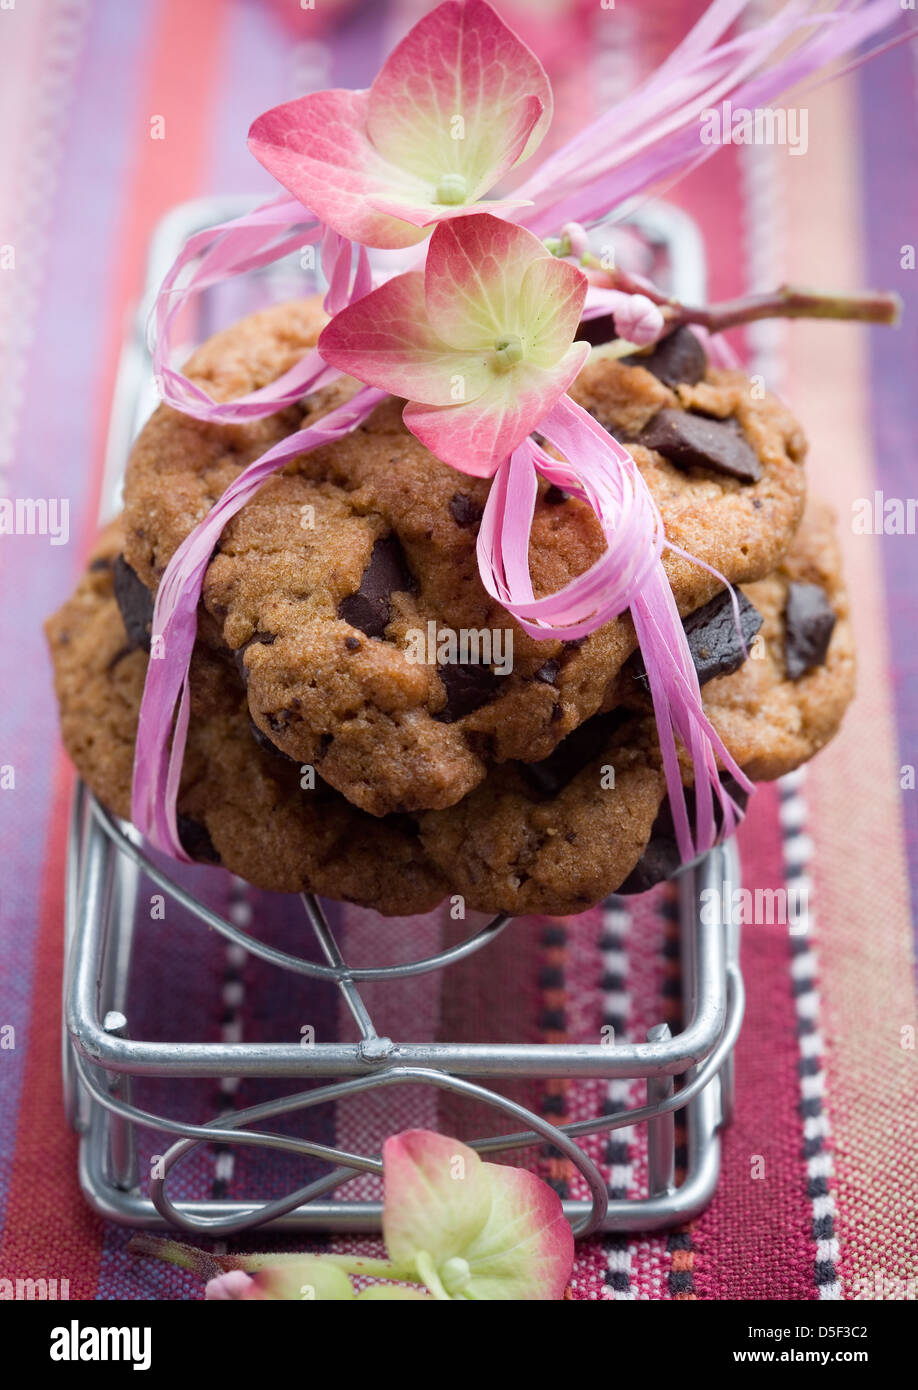 Pile of delicious chocolate chip cookies on table - Stock Image